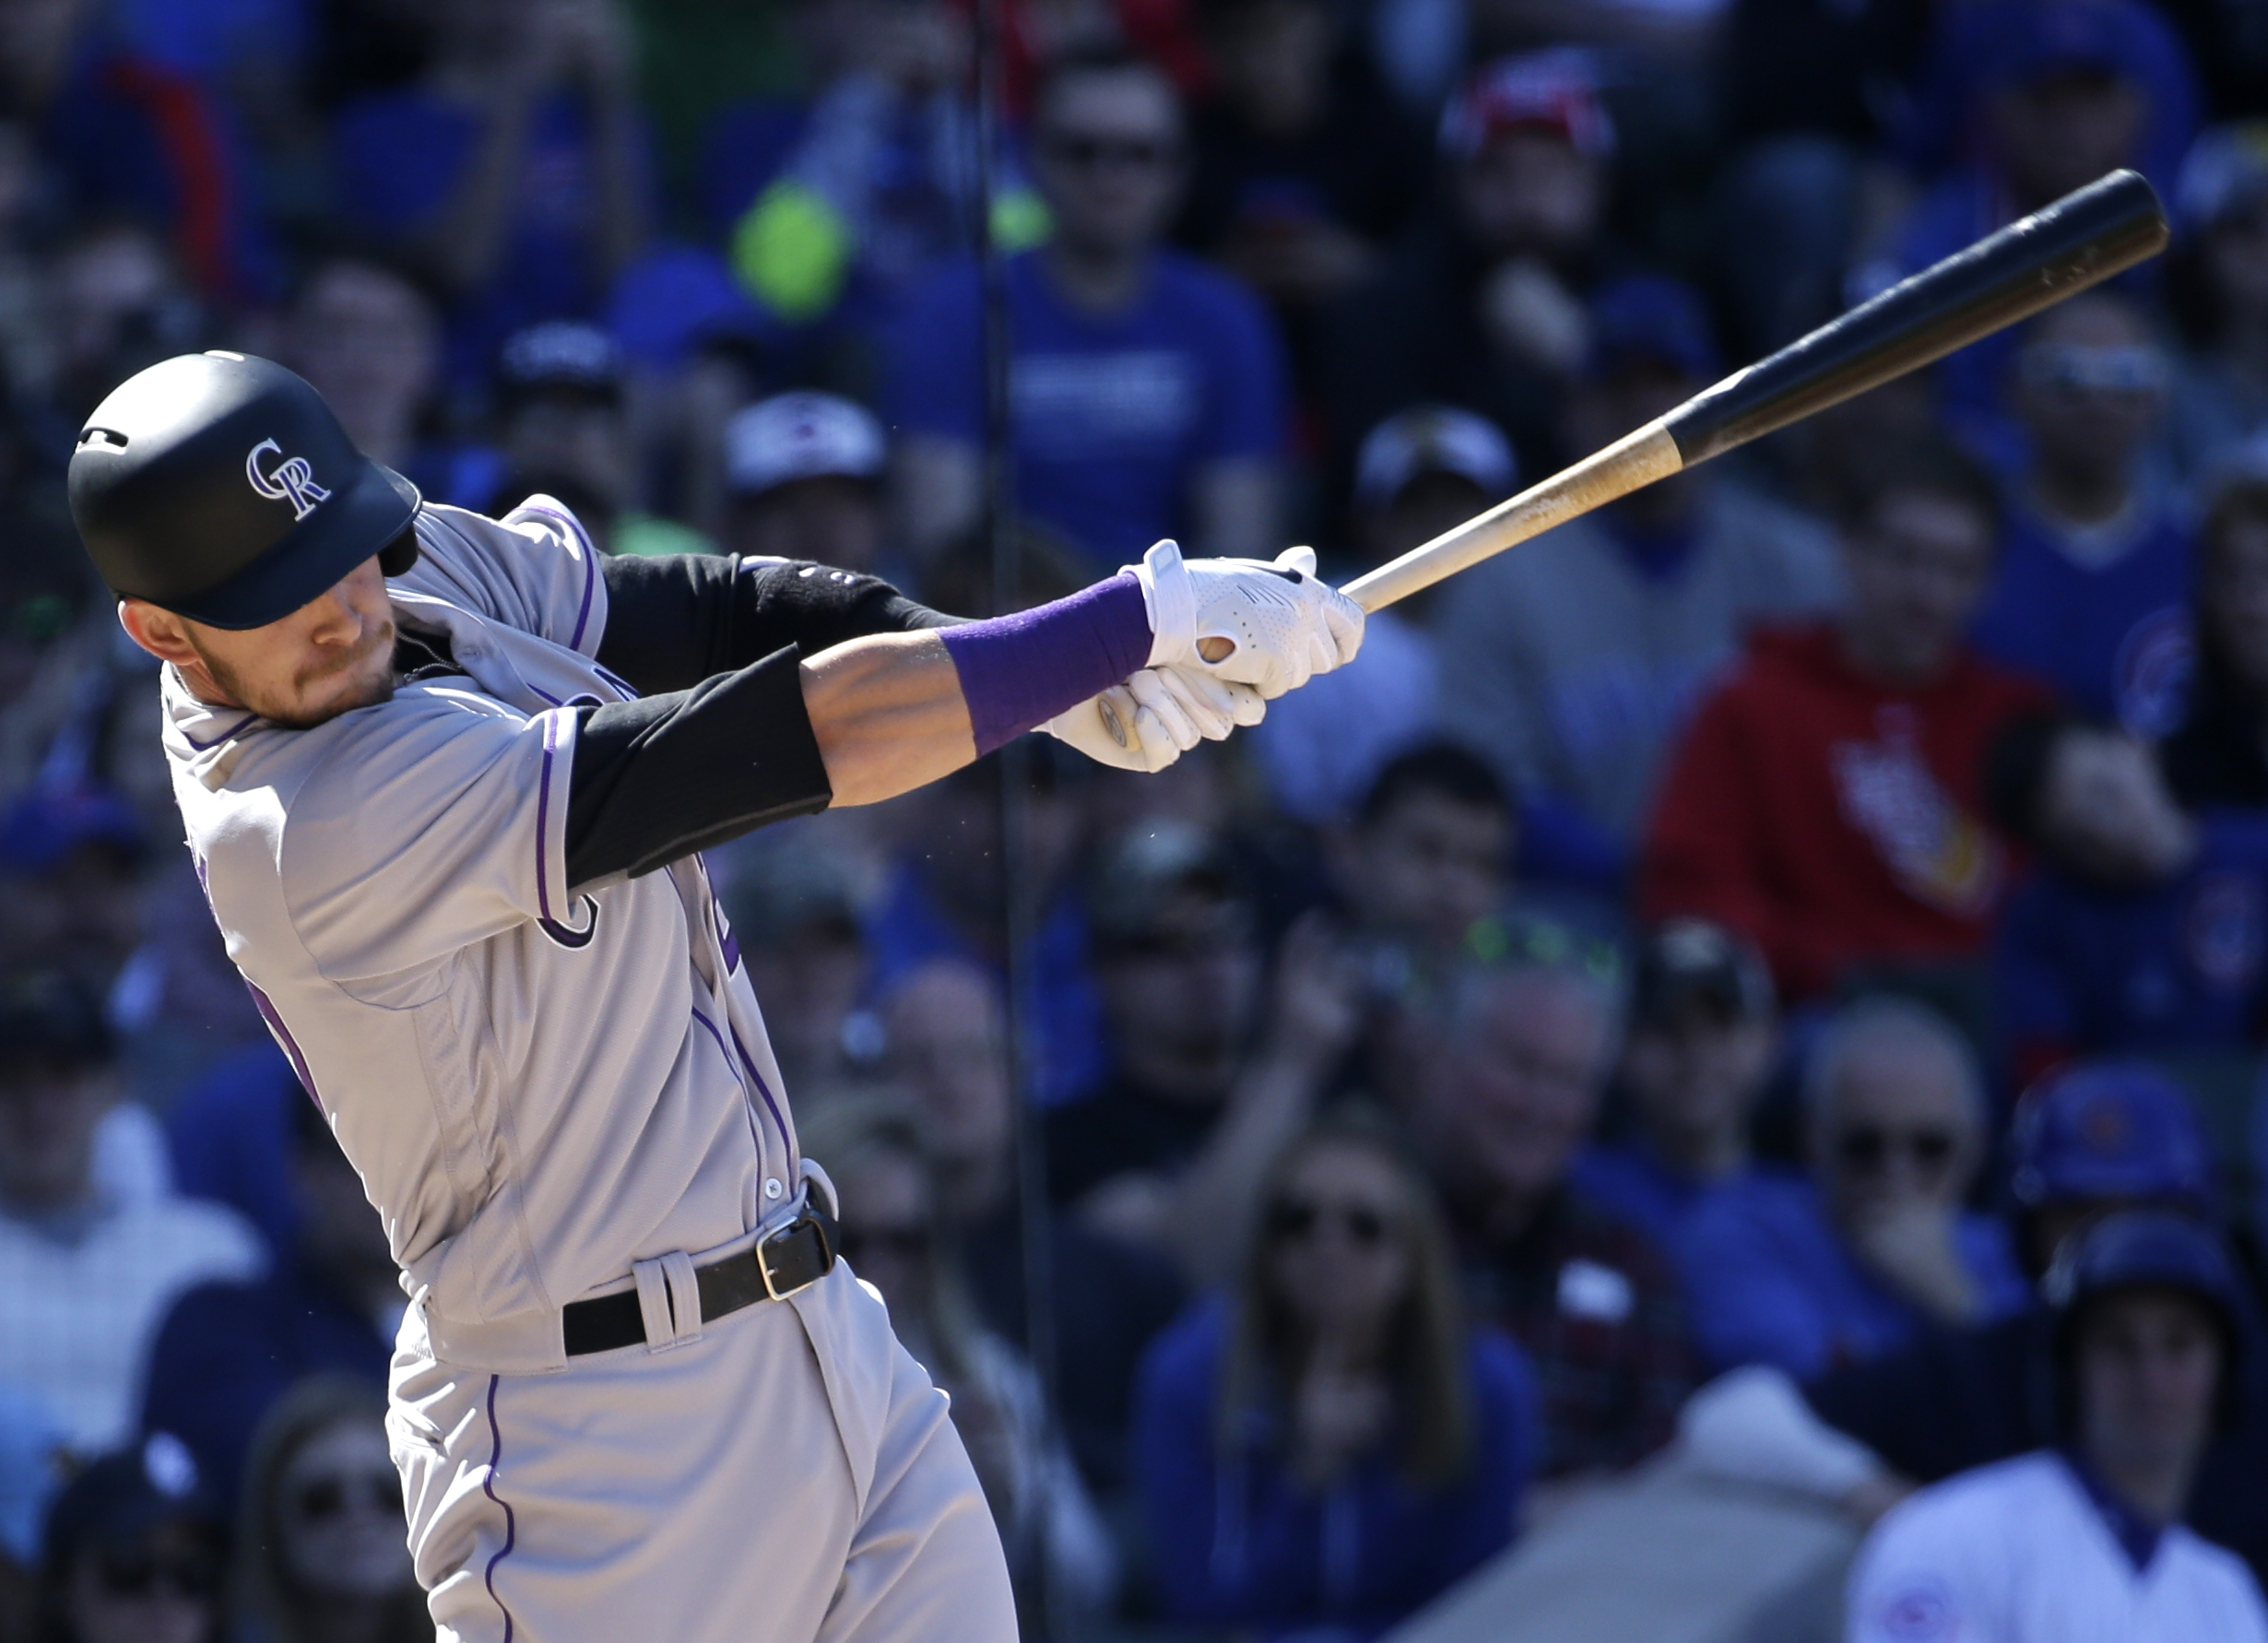 Colorado Rockies' Trevor Story hits a double during the ninth inning of a baseball game against the Chicago Cubs Saturday, April 16, 2016, in Chicago. (AP Photo/Nam Y. Huh)